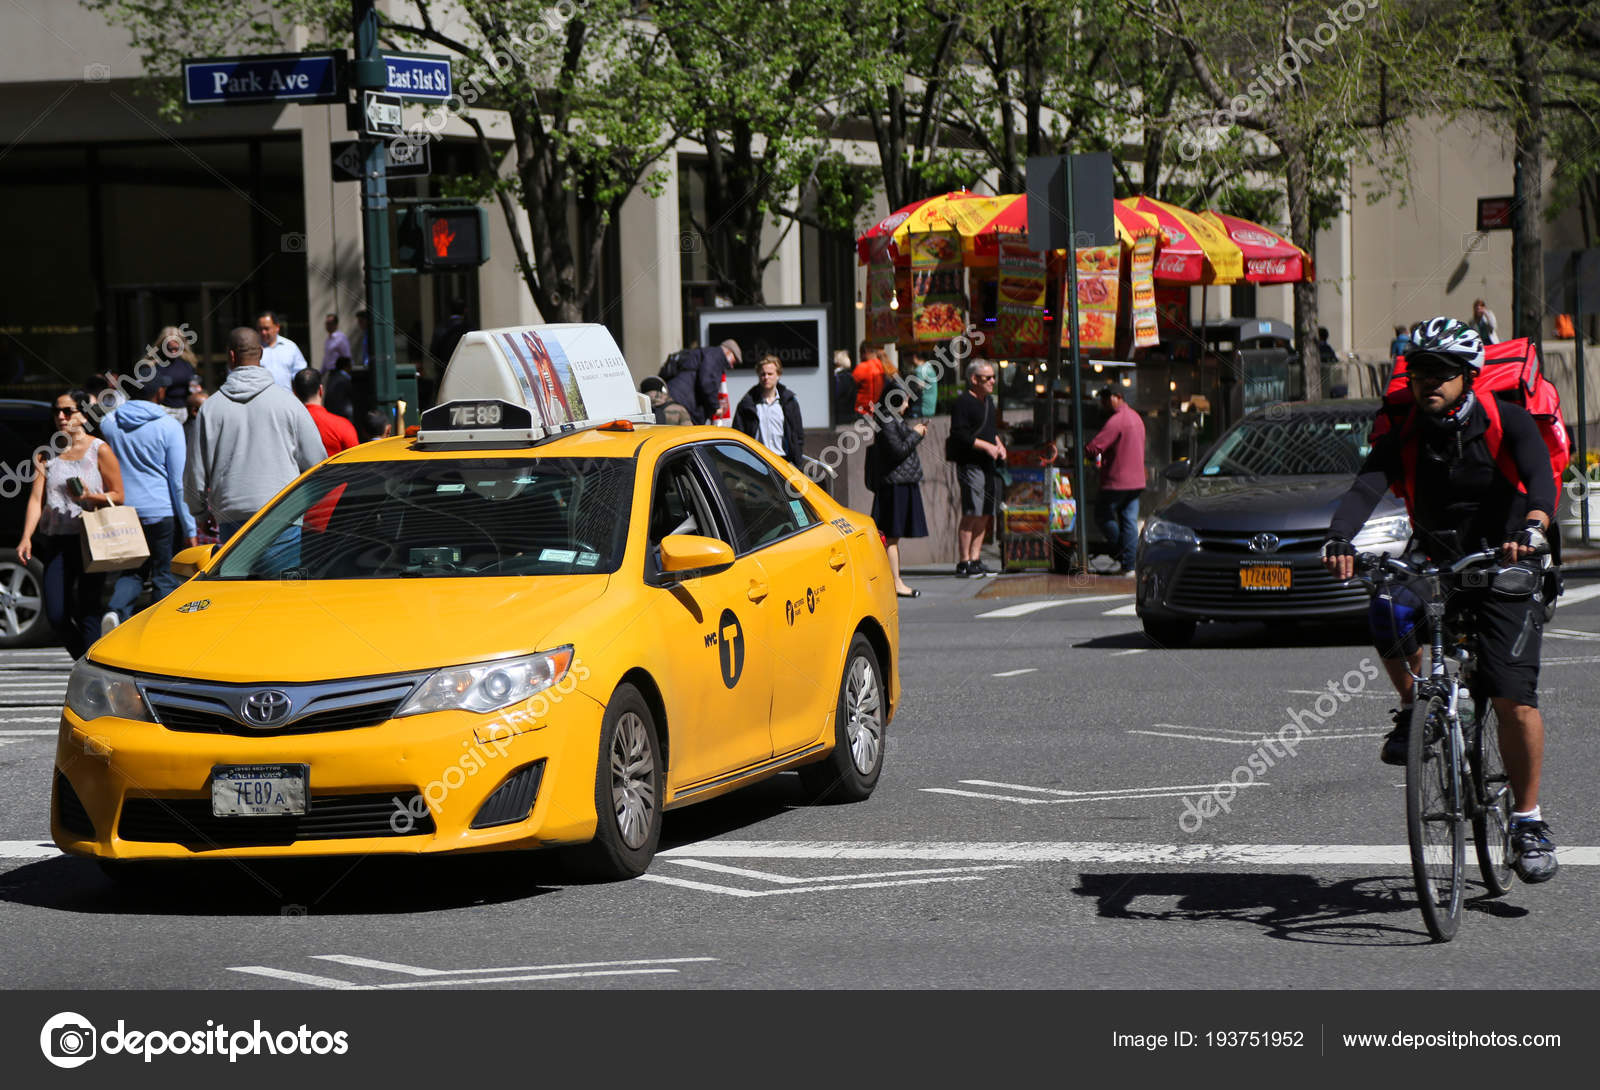 new york city april 2018 new york taxi bike rider stock. Black Bedroom Furniture Sets. Home Design Ideas